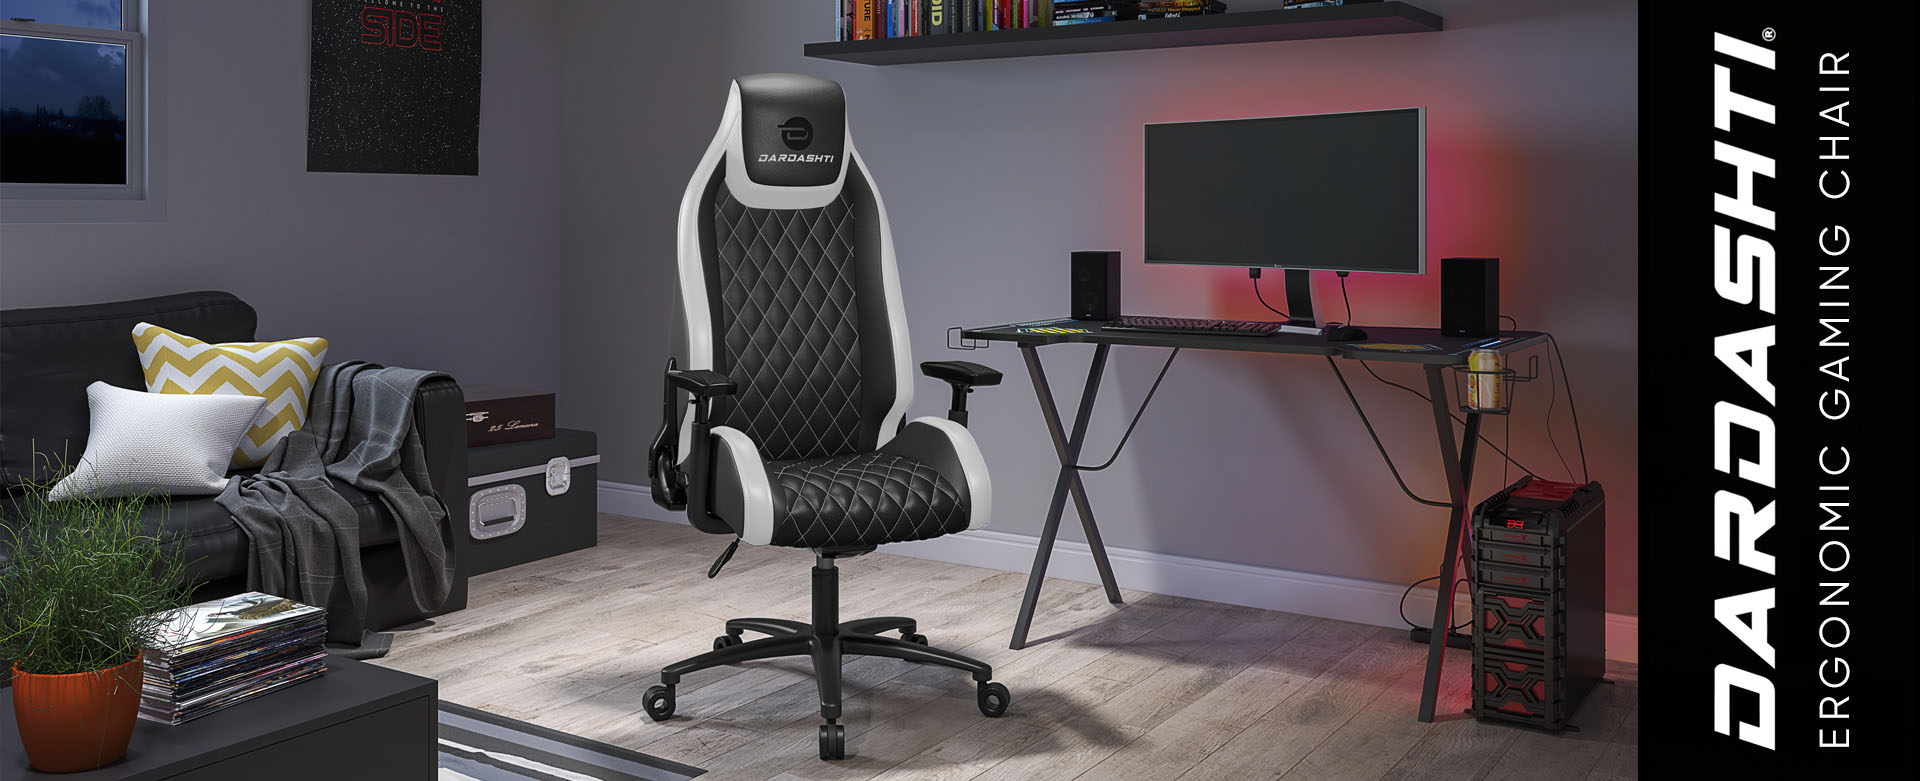 Dardashti Gaming Chair: The next-gen ergonomic gaming chair